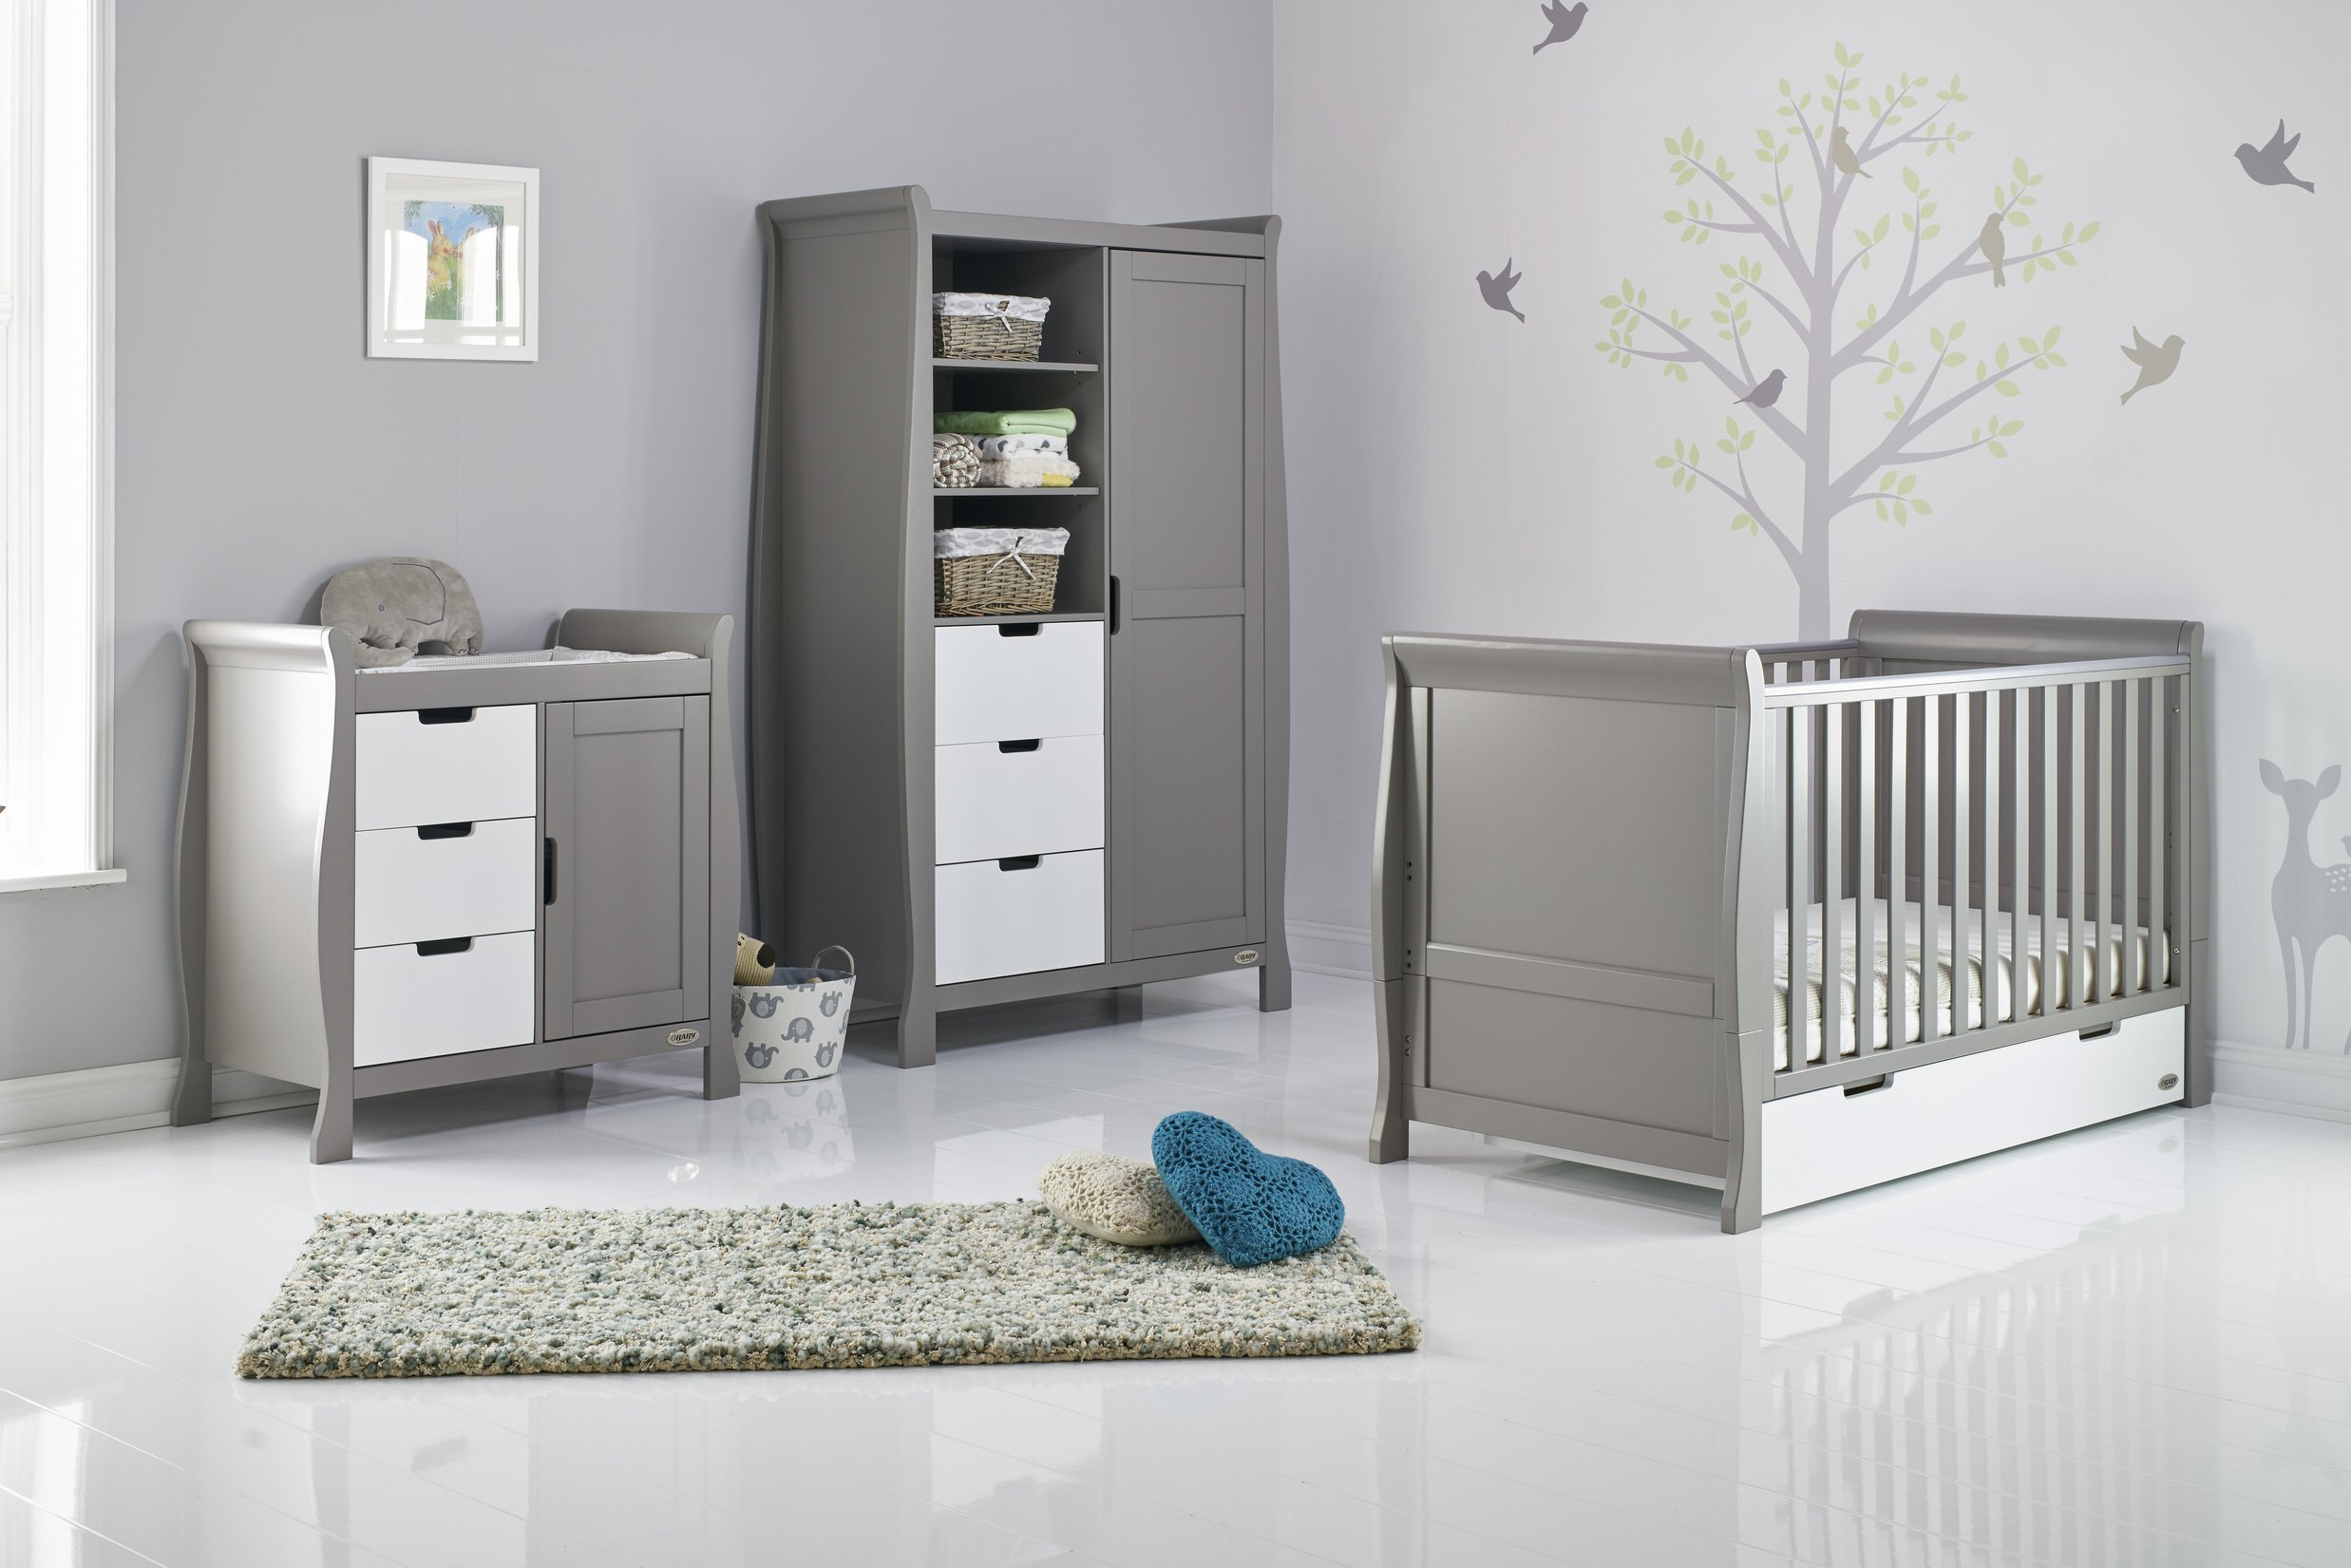 Obaby Stamford Sleigh 3 Piece Room Set - Taupe Grey & White